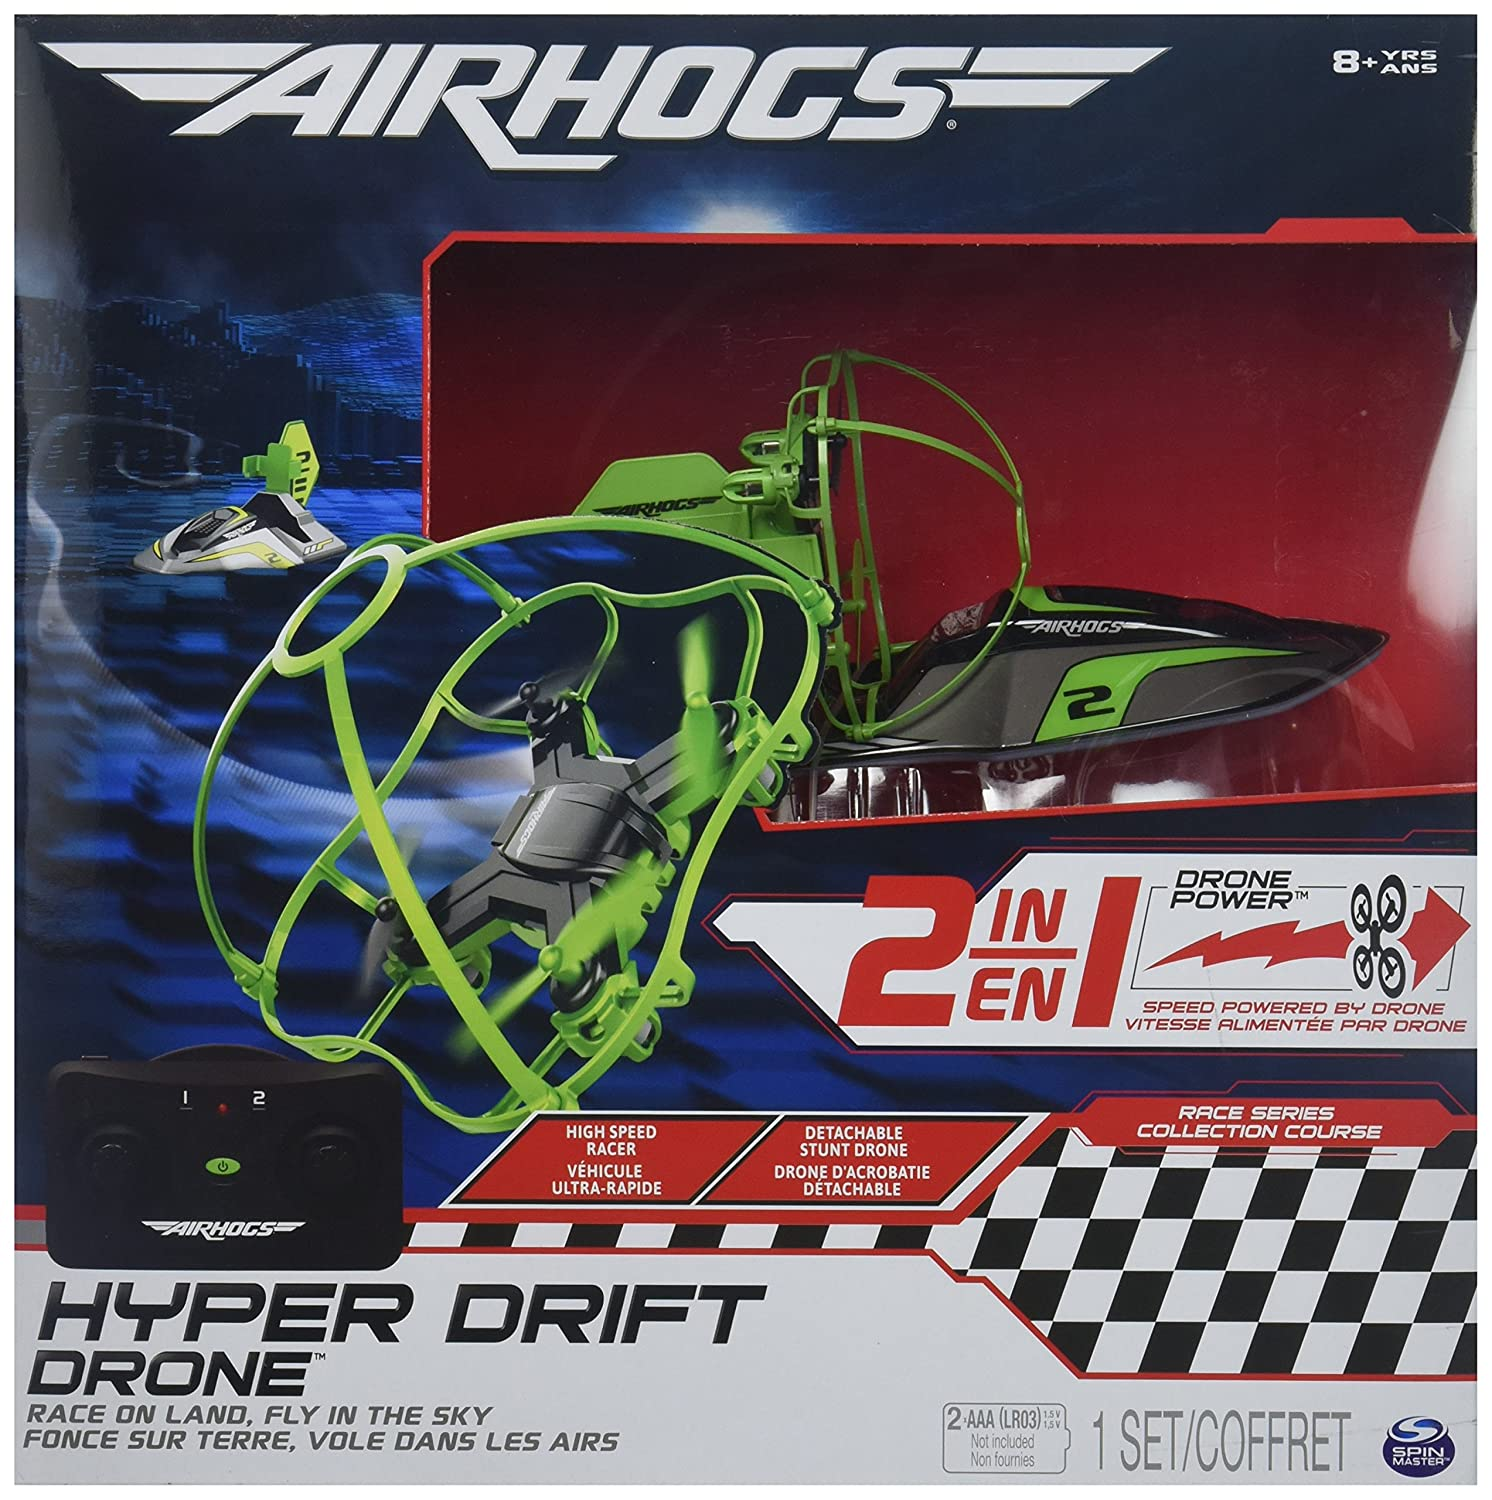 hyder drift drone best toys for 12 year olds